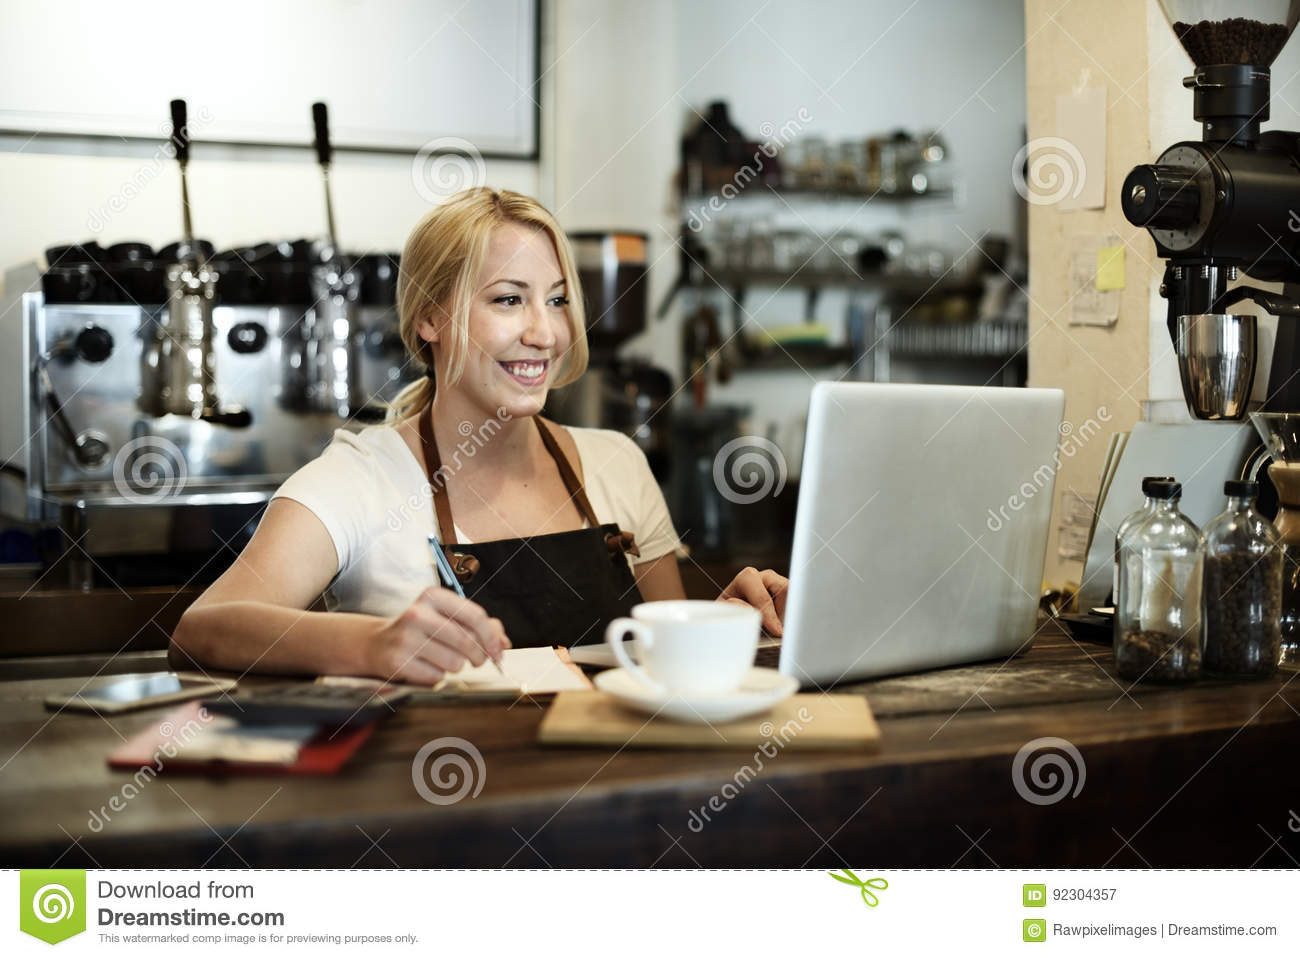 Cafe Coffee Waiter Staff Serving Cafeteria Apron Concept